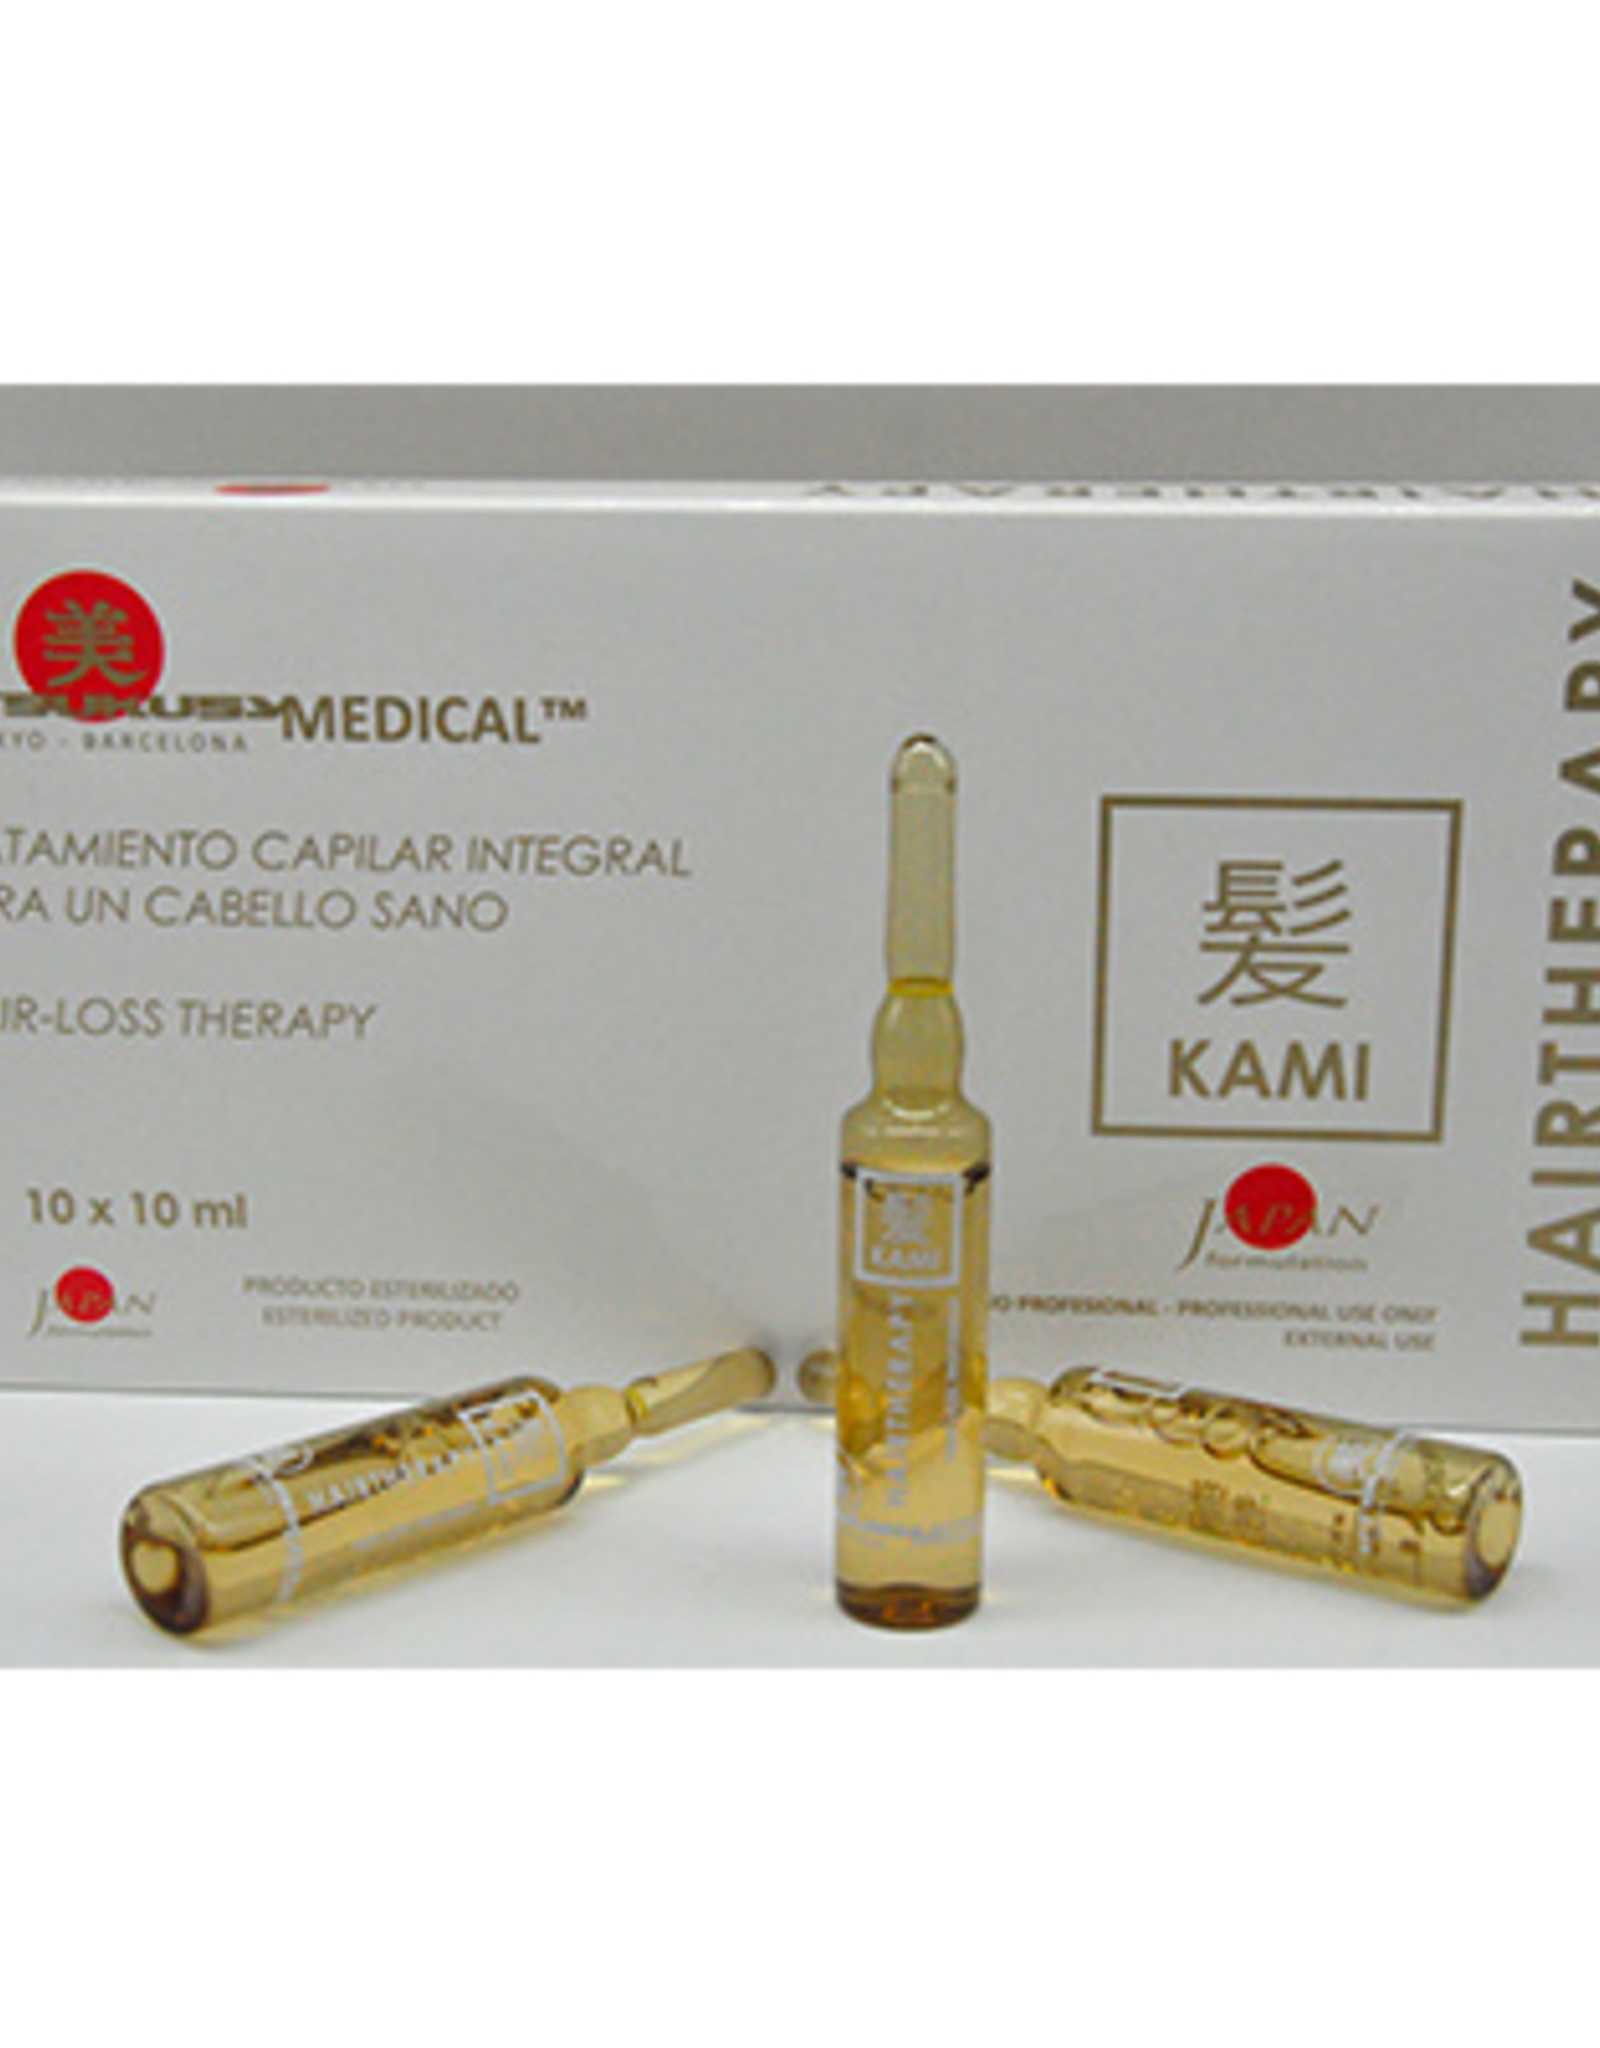 Utsukusy Kami Ampoules against hair loss